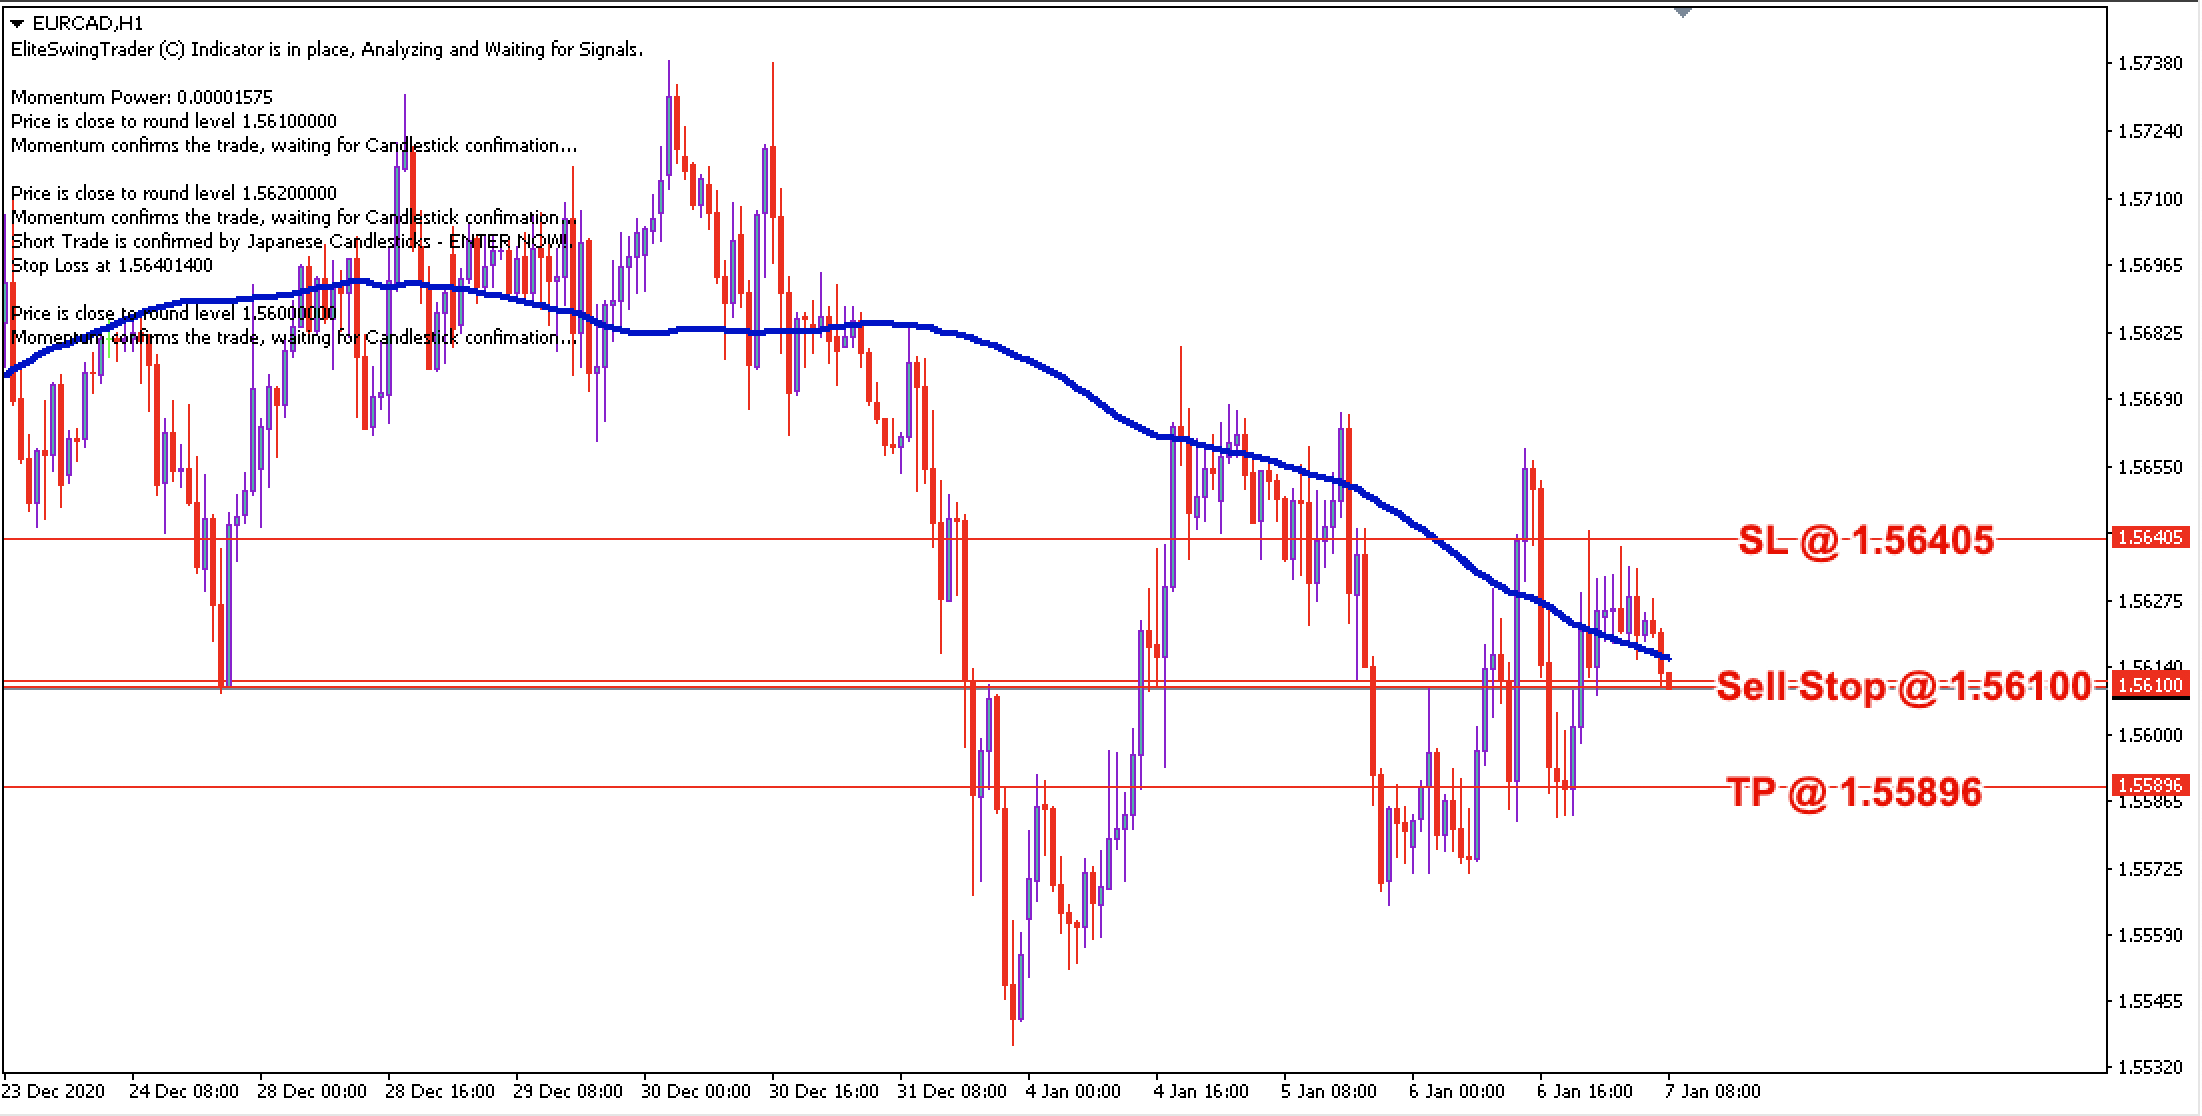 EUR/CAD Daily Price Forecast - 7th Jan 2021